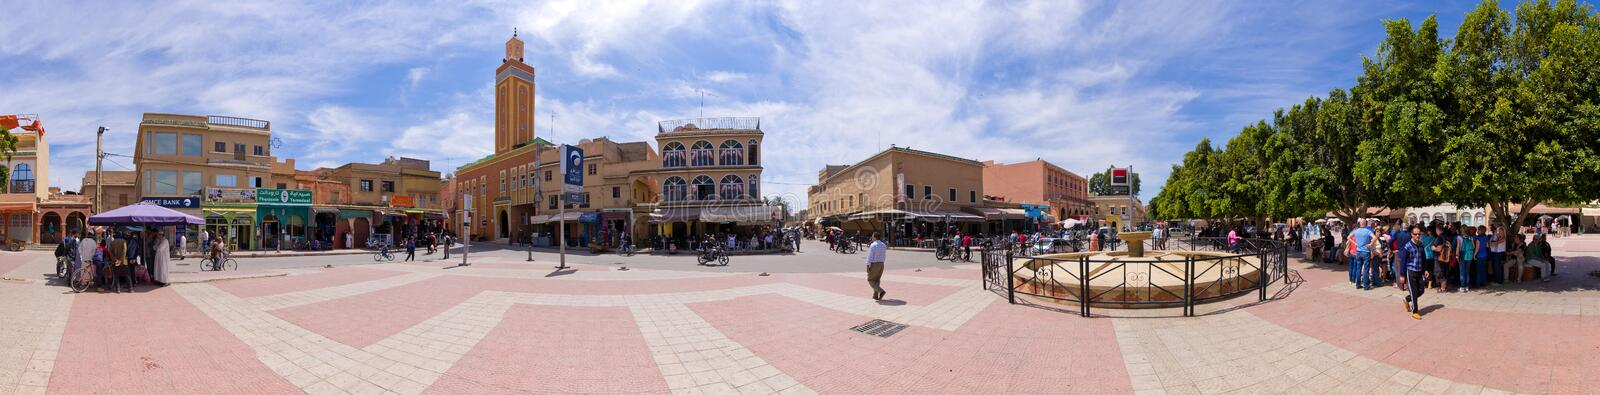 Taroudant in Morocco. Taroudant, Morocco - March 22, 2016: main square of the town. Berber town, located in the ?Sous Valley? in the southern part of Morocco stock photography